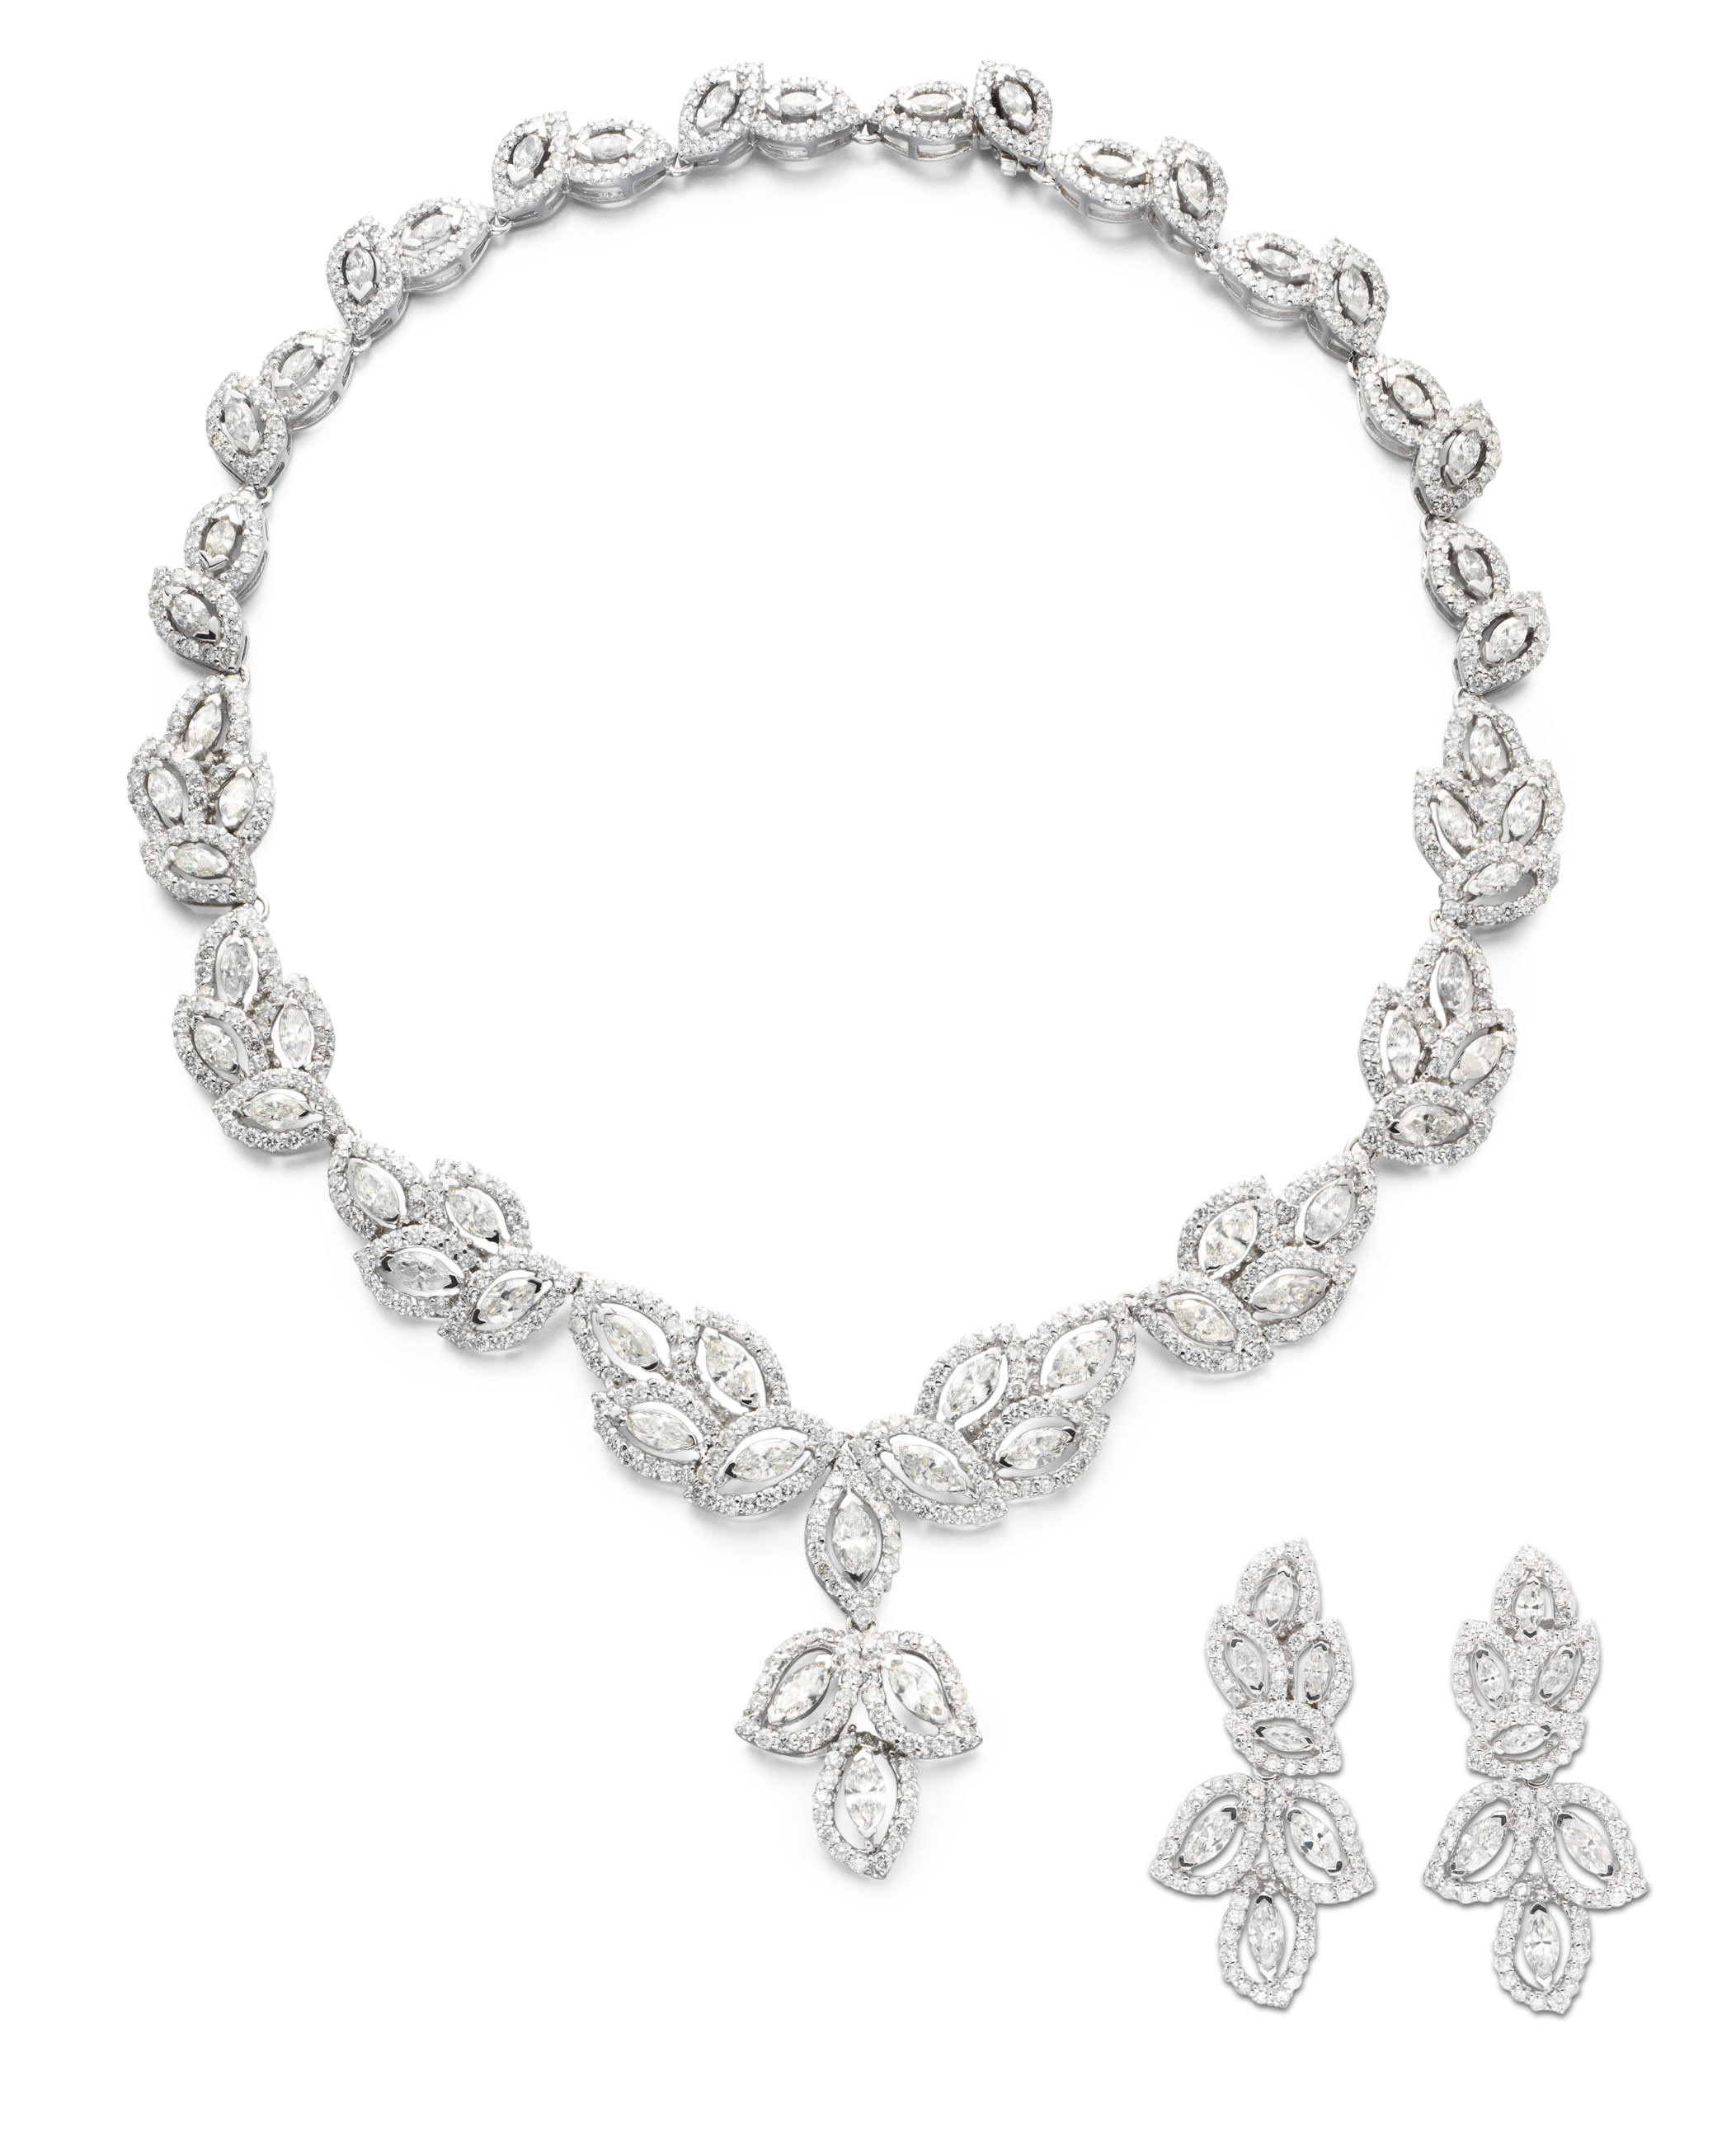 A SUITE OF DIAMOND JEWELRY